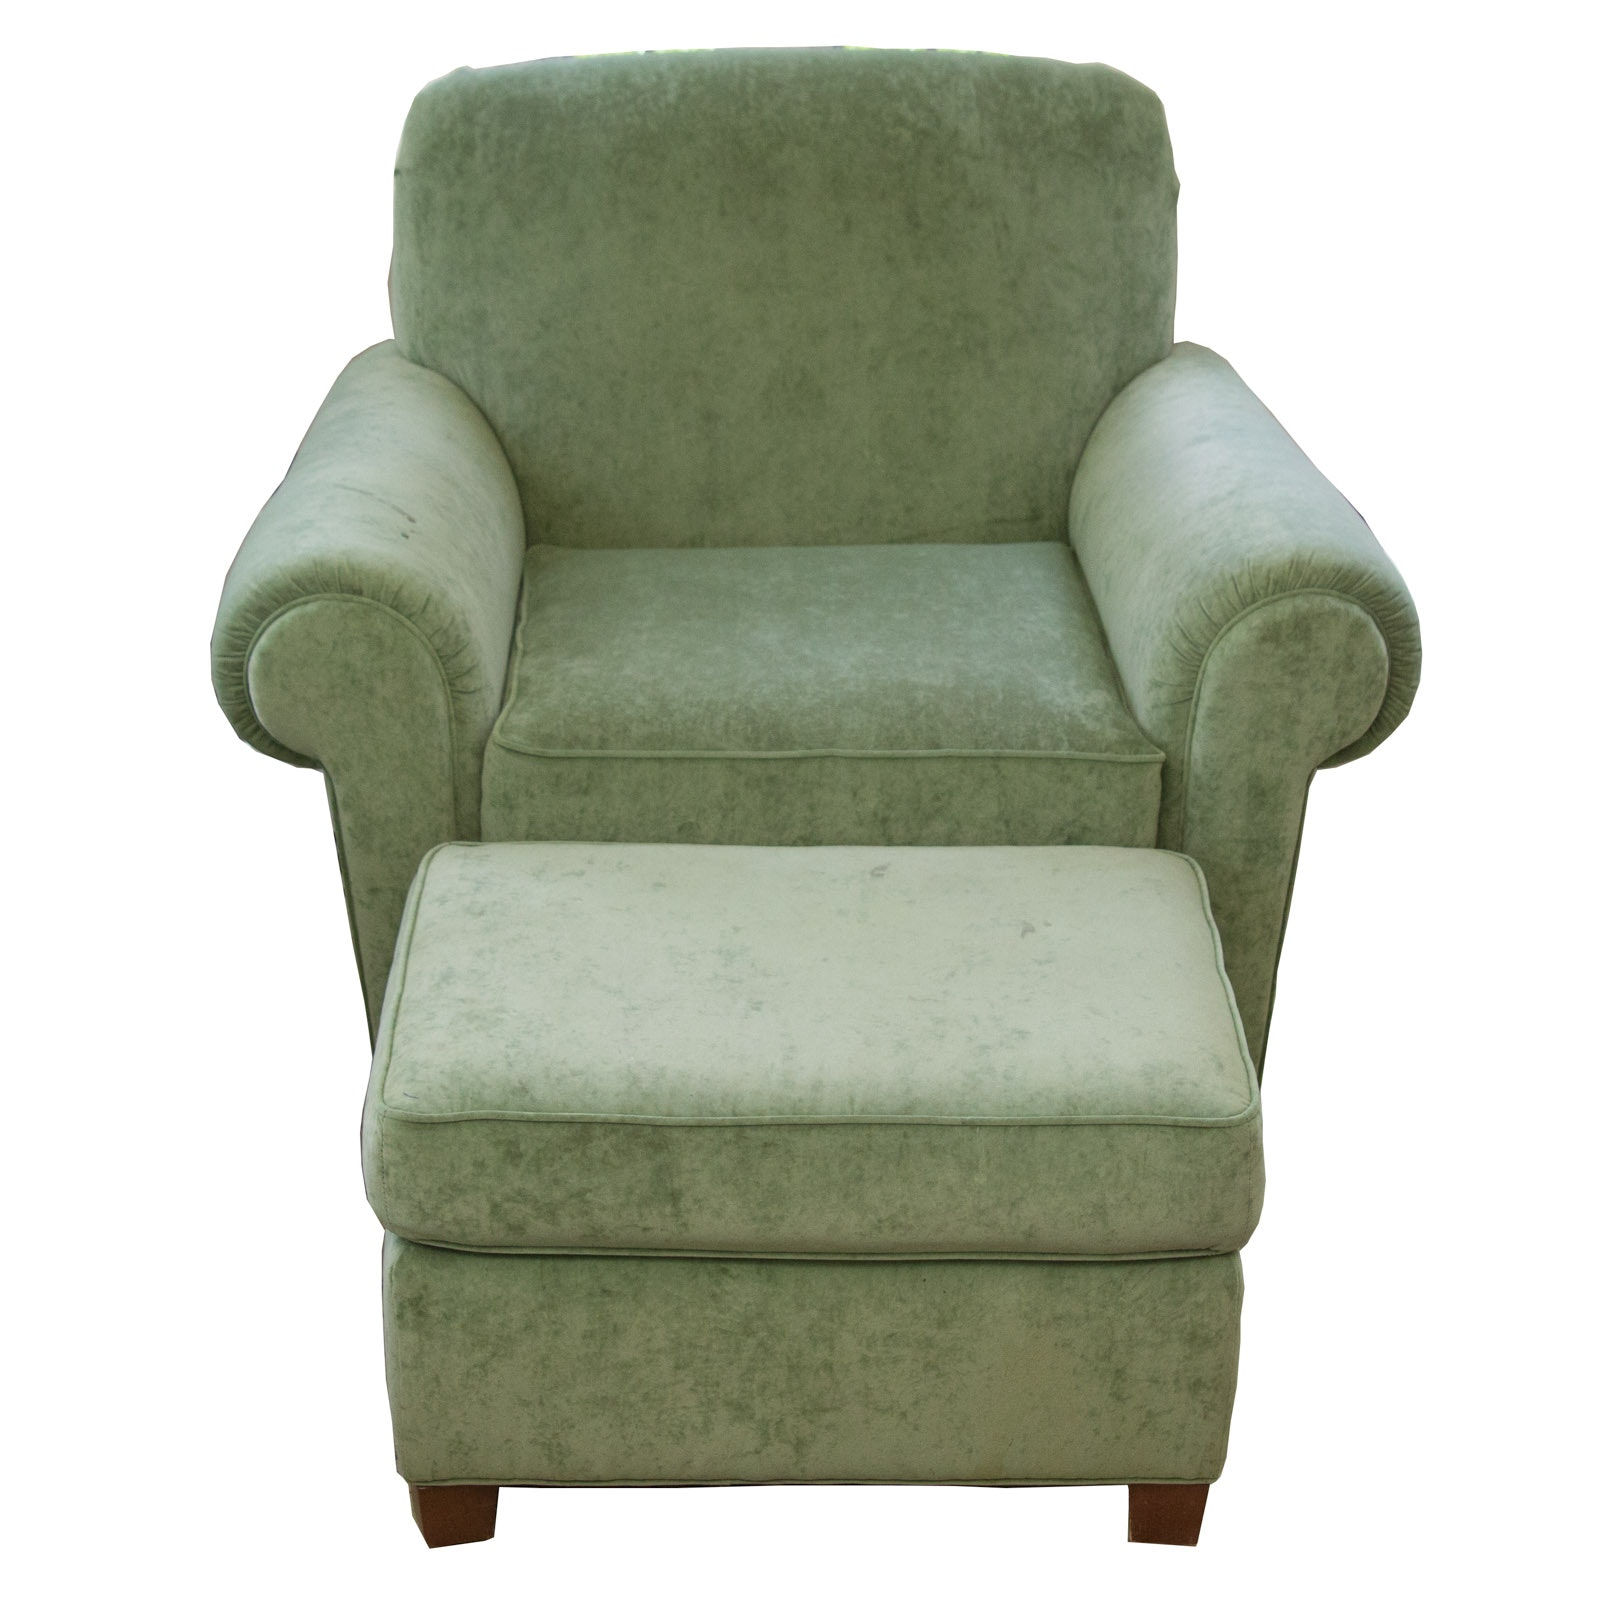 Norwalk Furniture Armchair With Ottoman ...